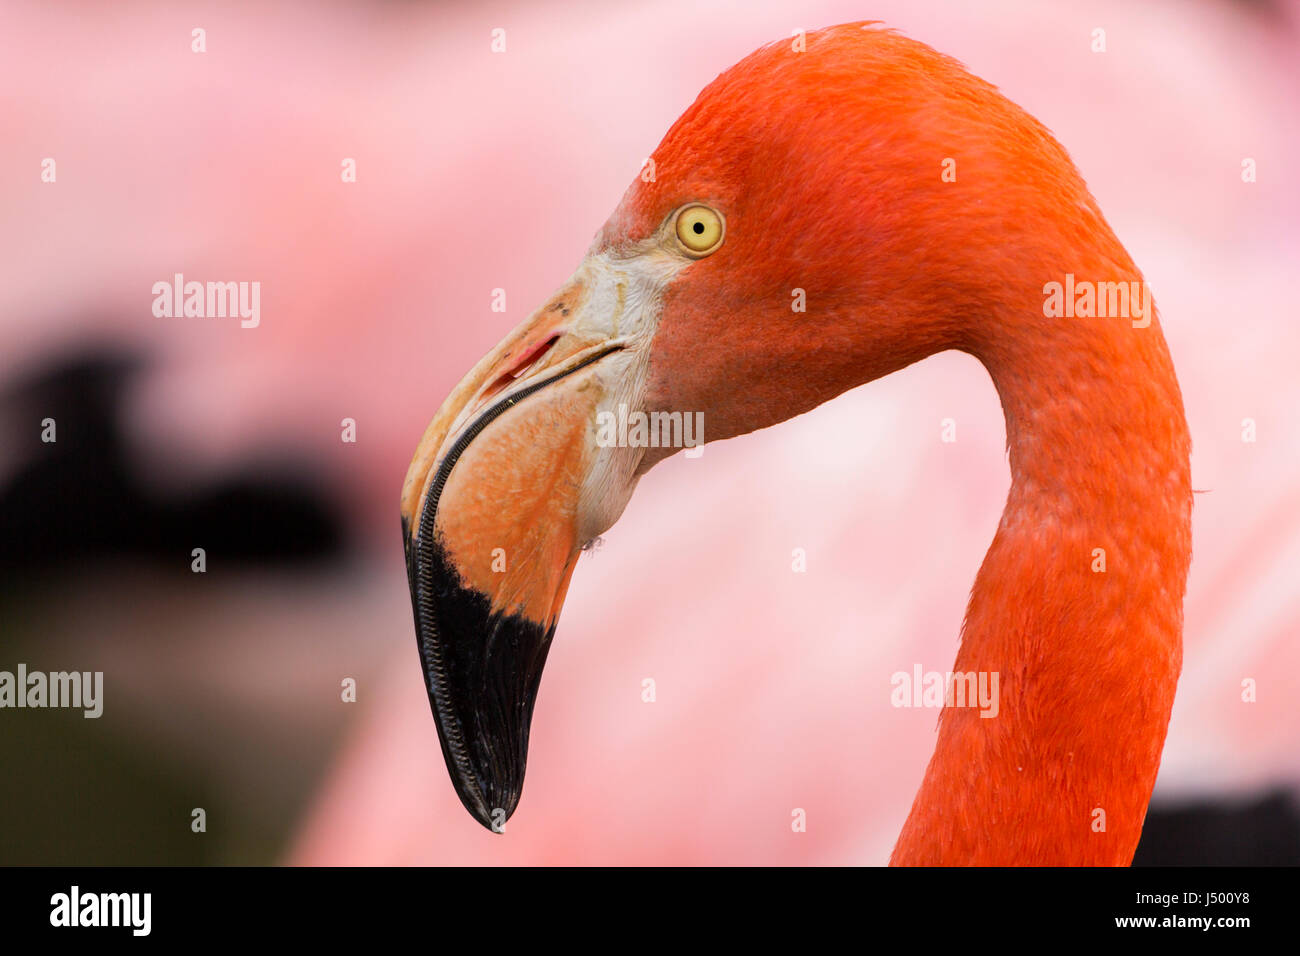 Flamingos seen at Slimbridge wetland centre are bright pink red or orange. This orange one is a greater flamingo. - Stock Image